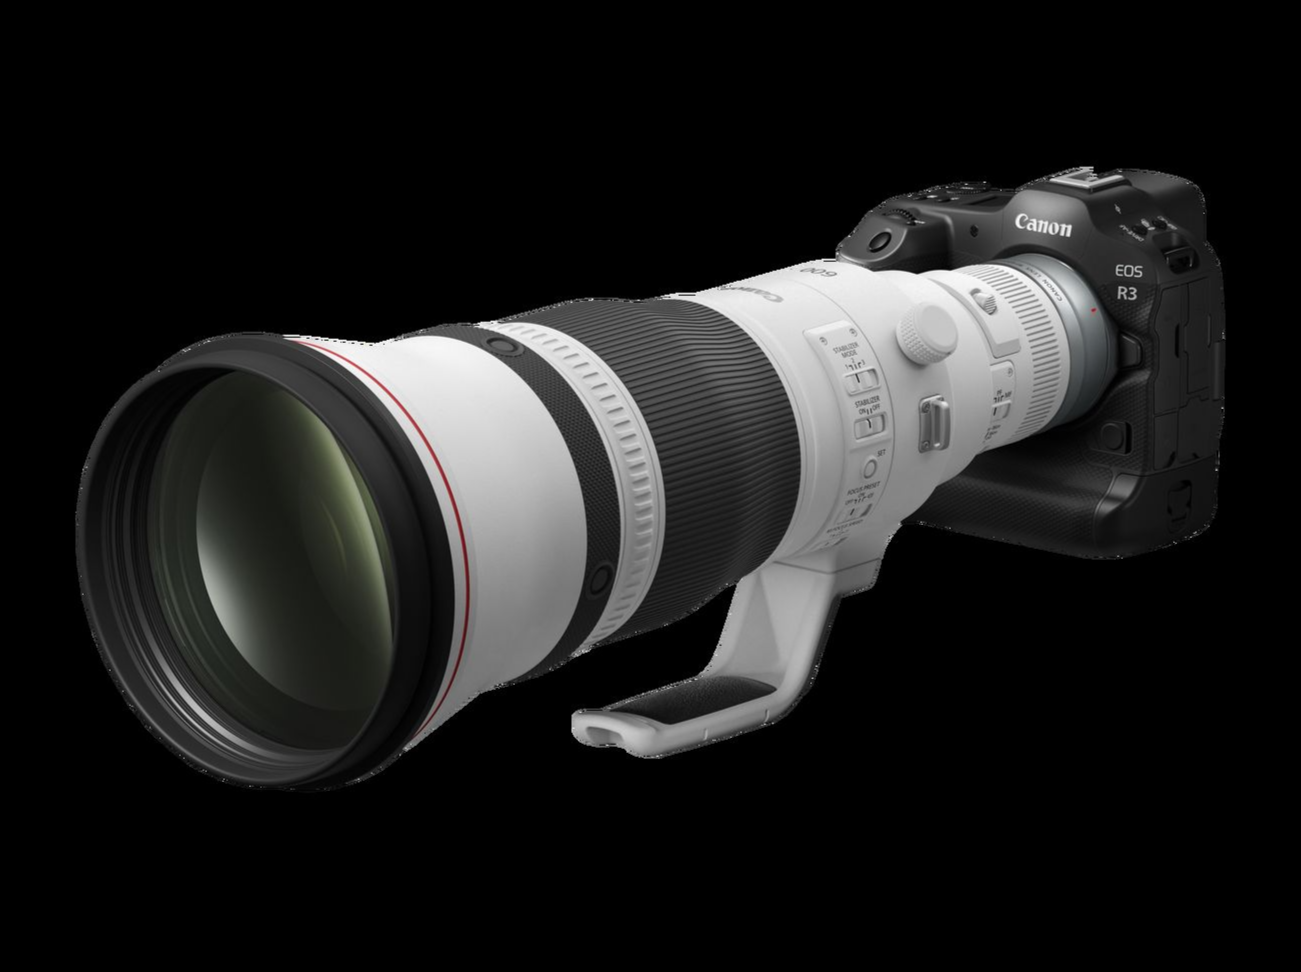 canon-eos-r3-professional-mirrorless-cameras-canon-uk-google-chrome-13-09-2021-15-36-49.png